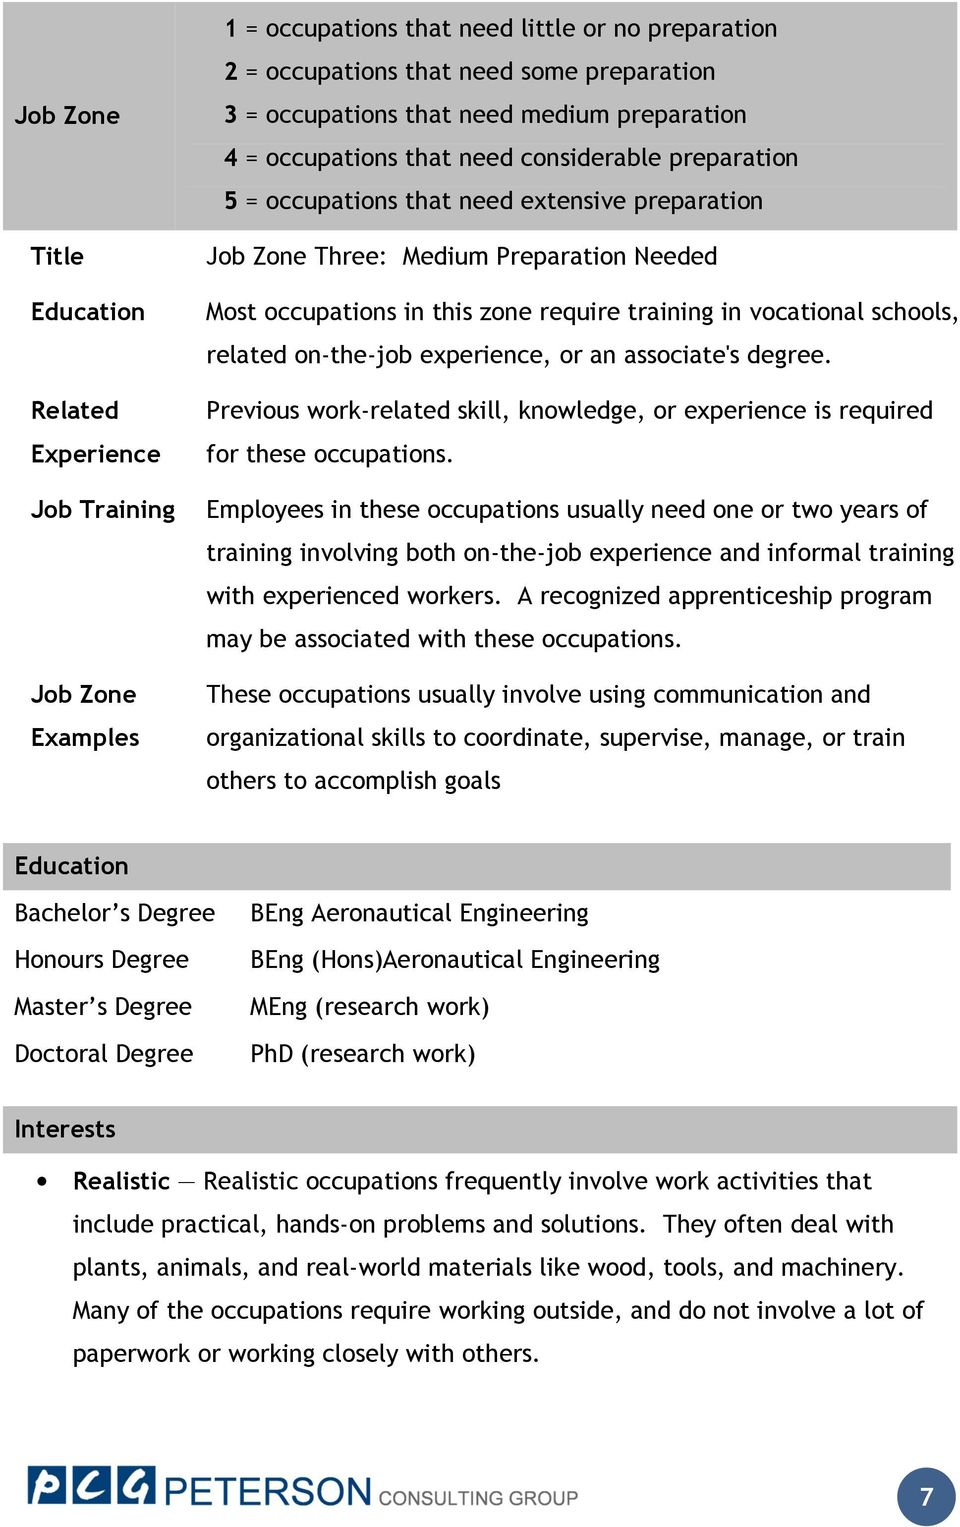 training in vocational schools, related on-the-job experience, or an associate's degree. Previous work-related skill, knowledge, or experience is required for these occupations.